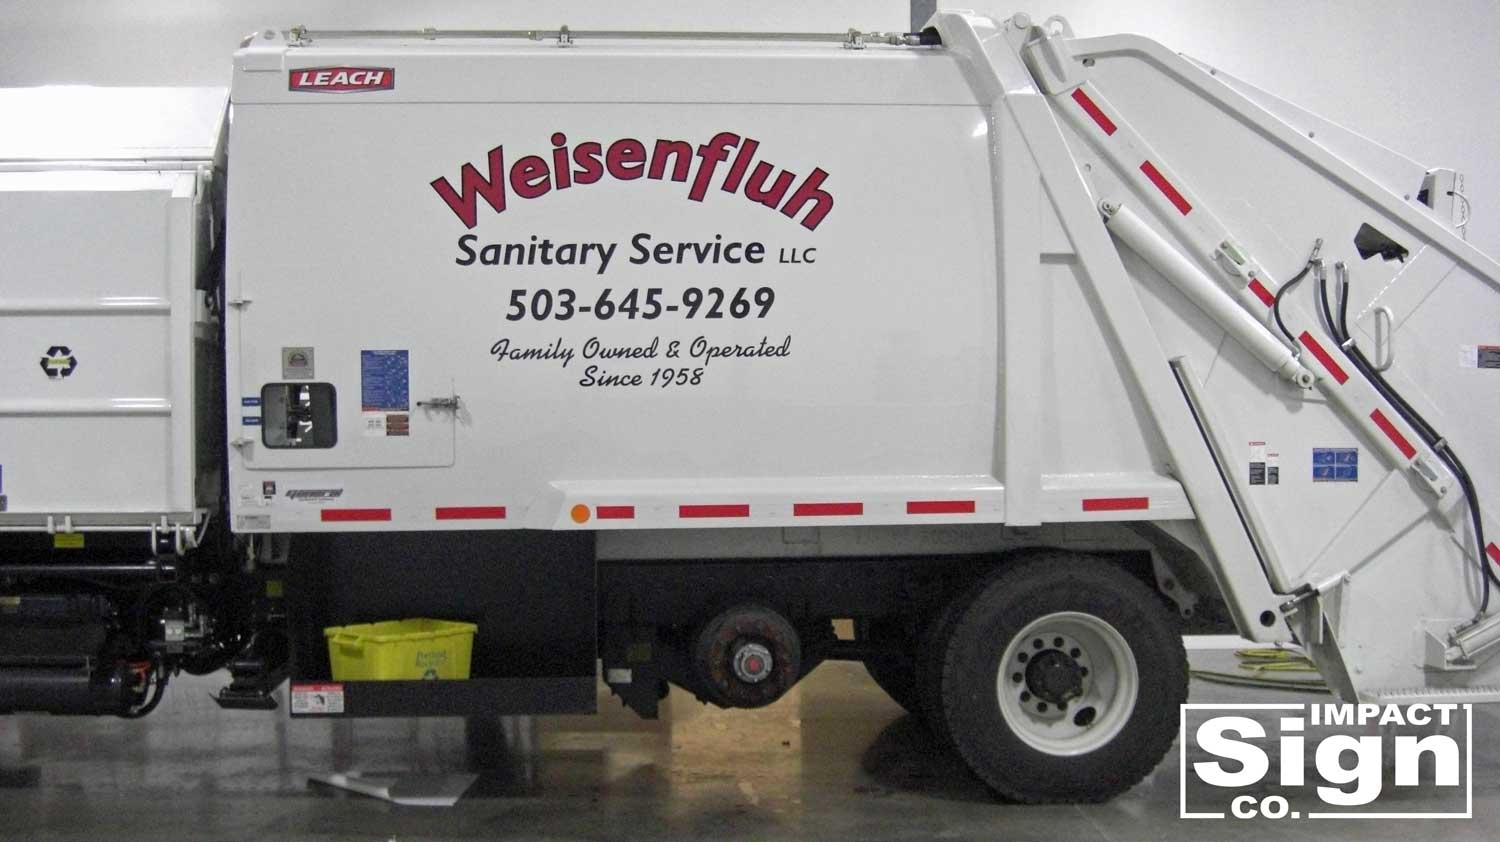 Weisenfluh Sanitary Service Truck Graphics